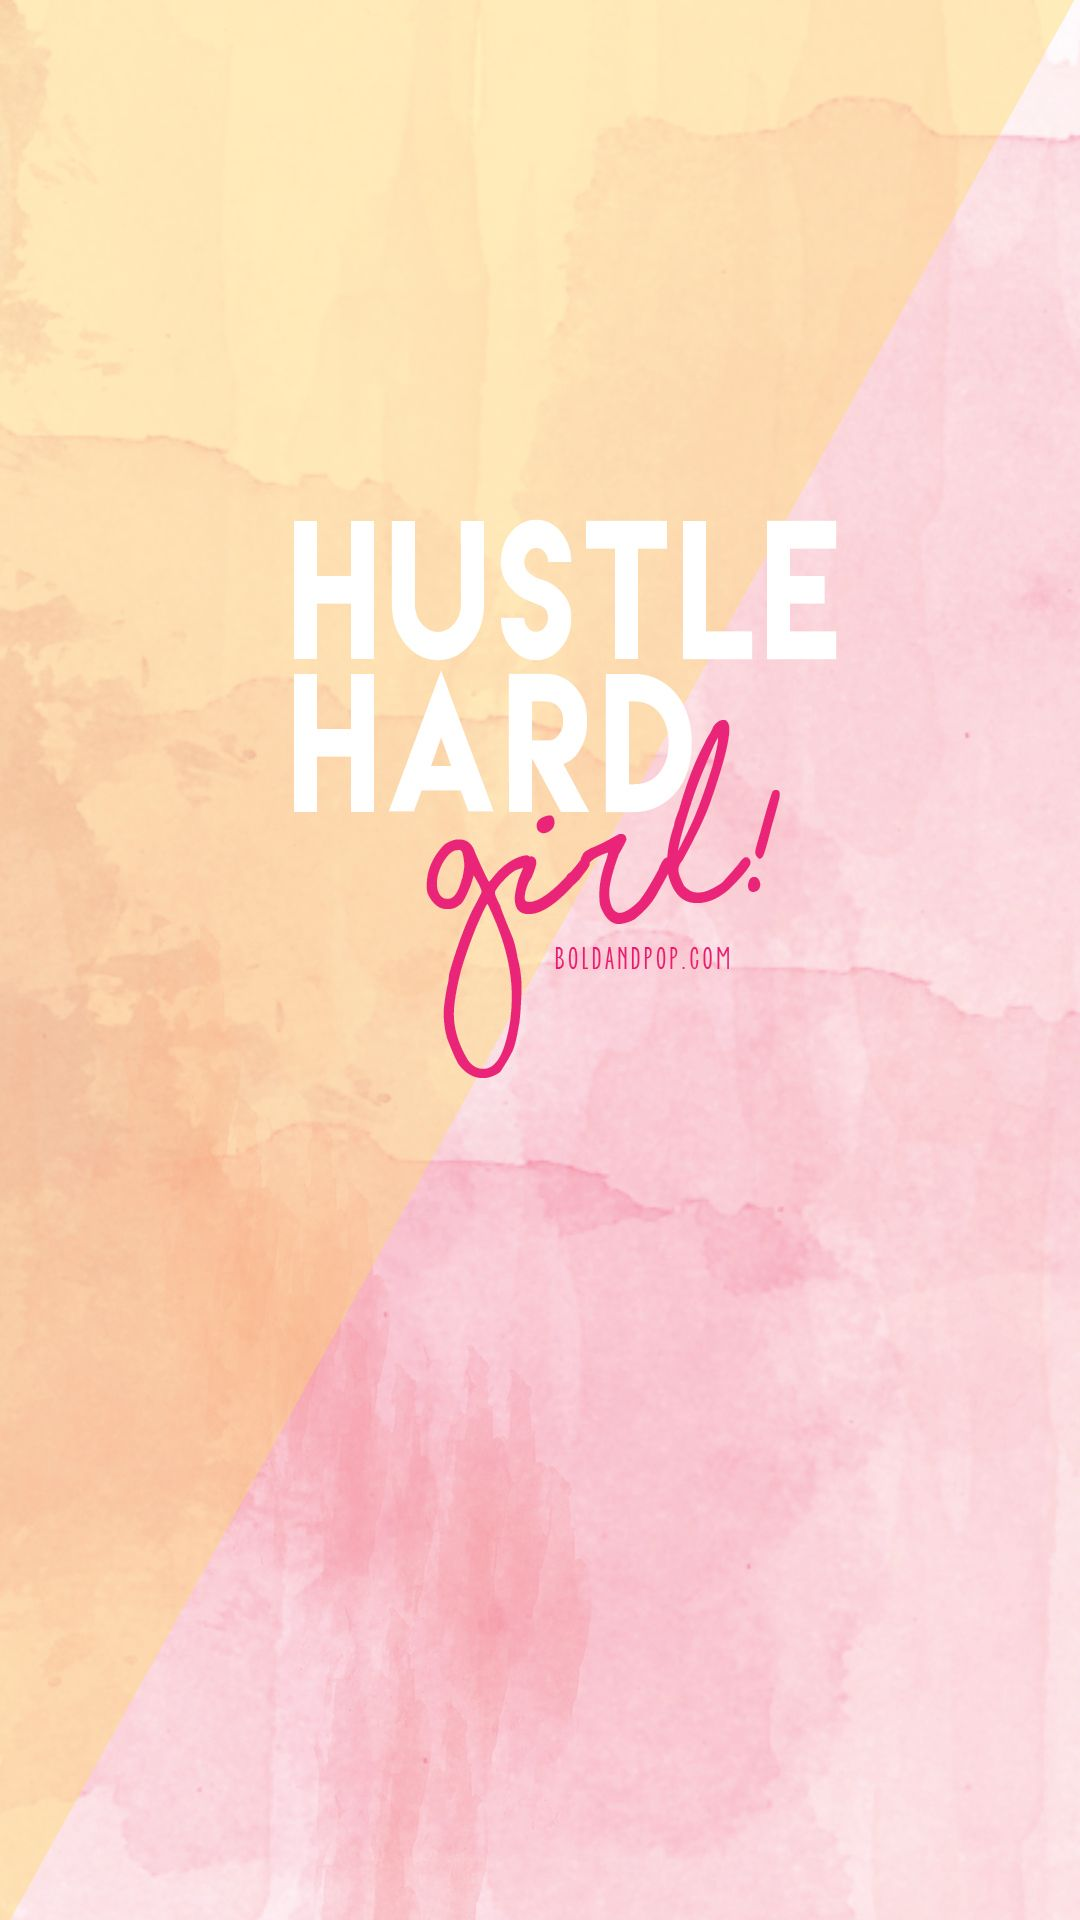 Bold Pop Freebies Hustle Hard Girl Iphone Wallpaper Free